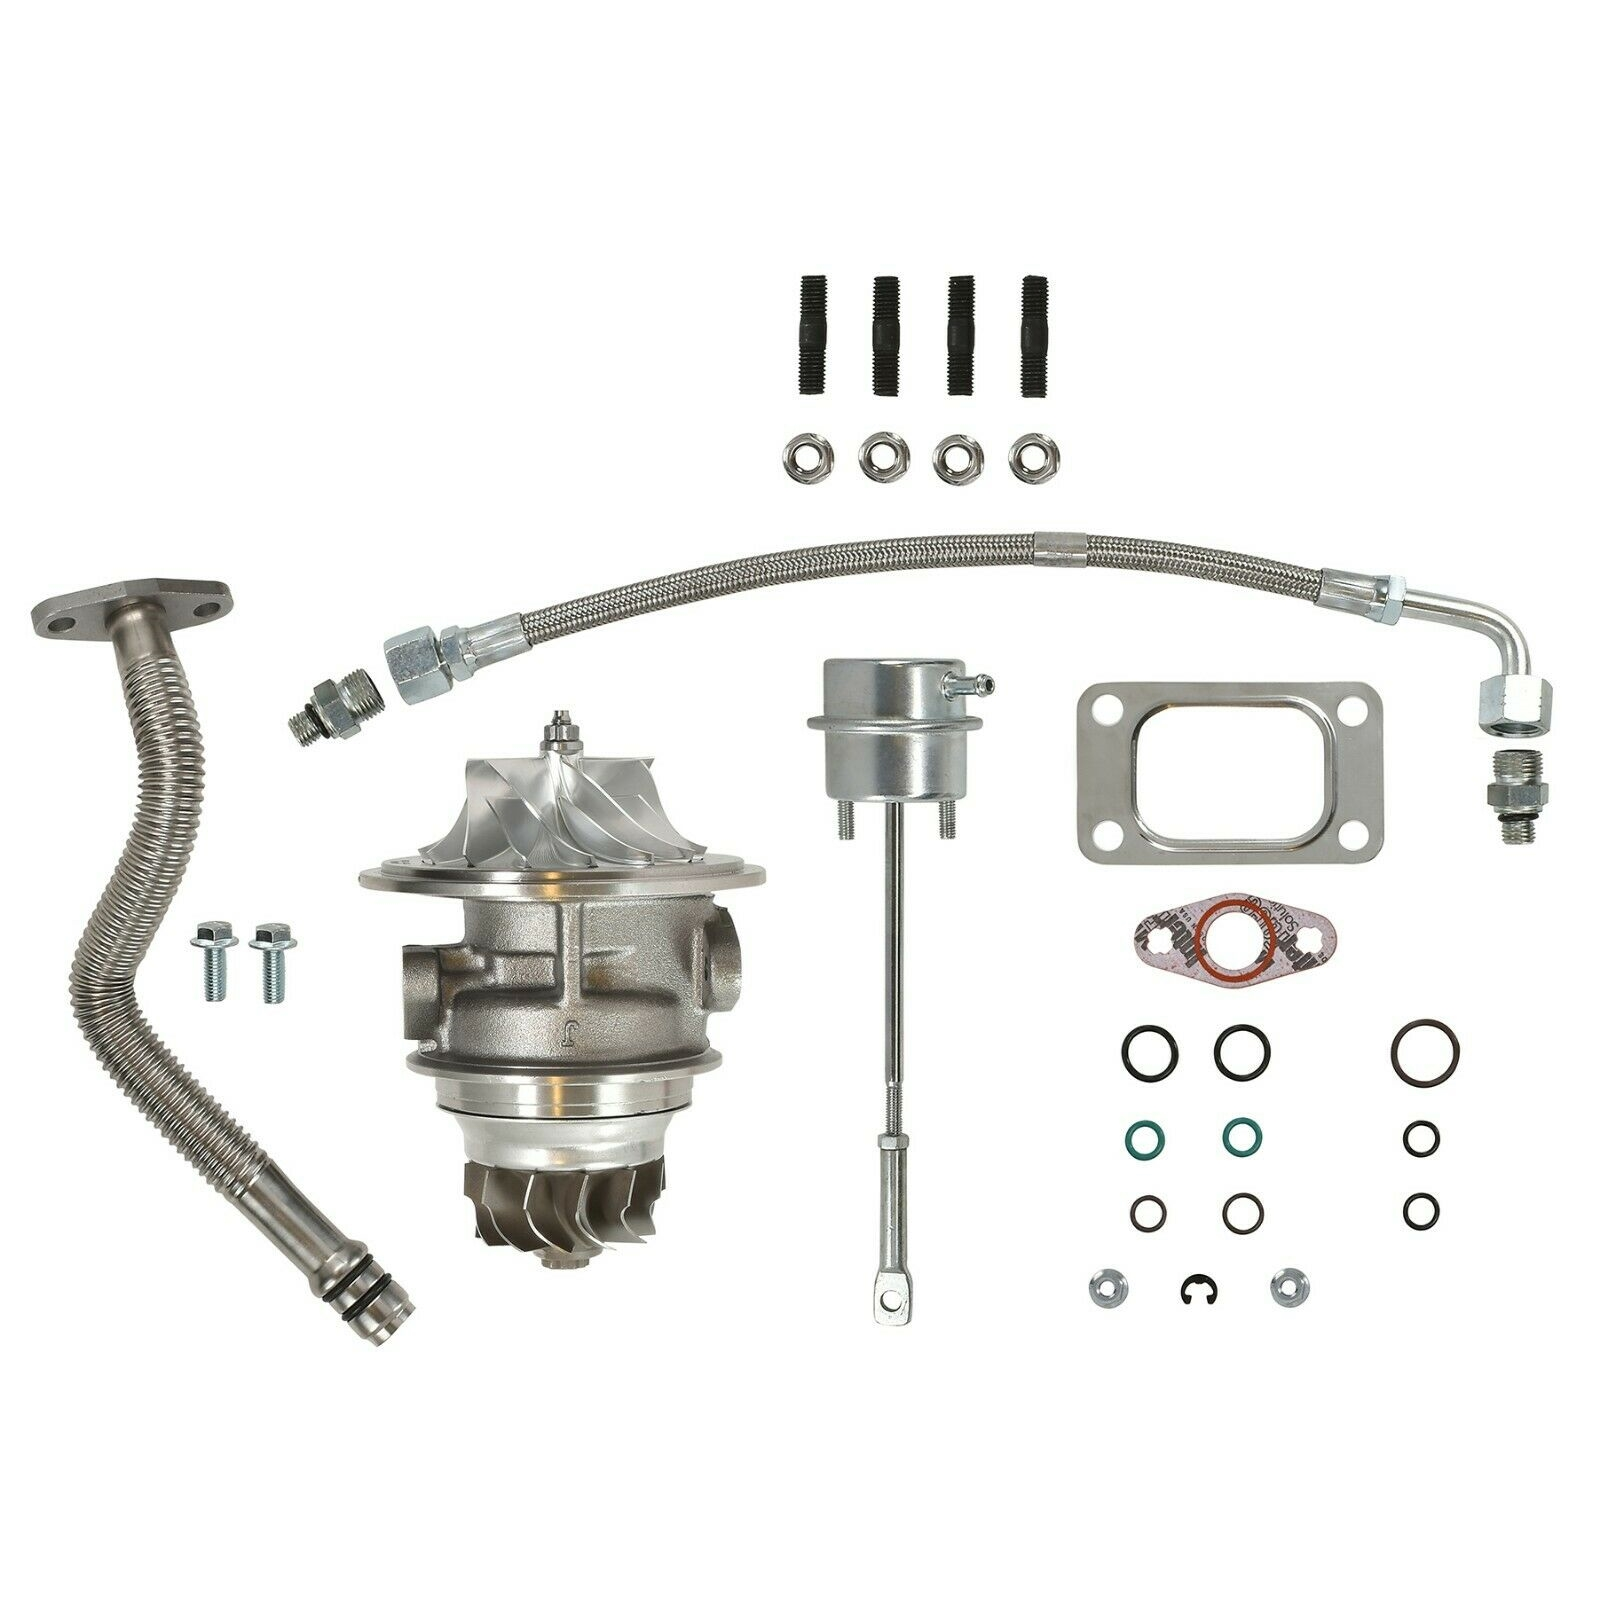 HY35W Master Turbo Rebuild Kit Billet CHRA For 03-04 5.9L ISB Dodge Ram Cummins Diesel